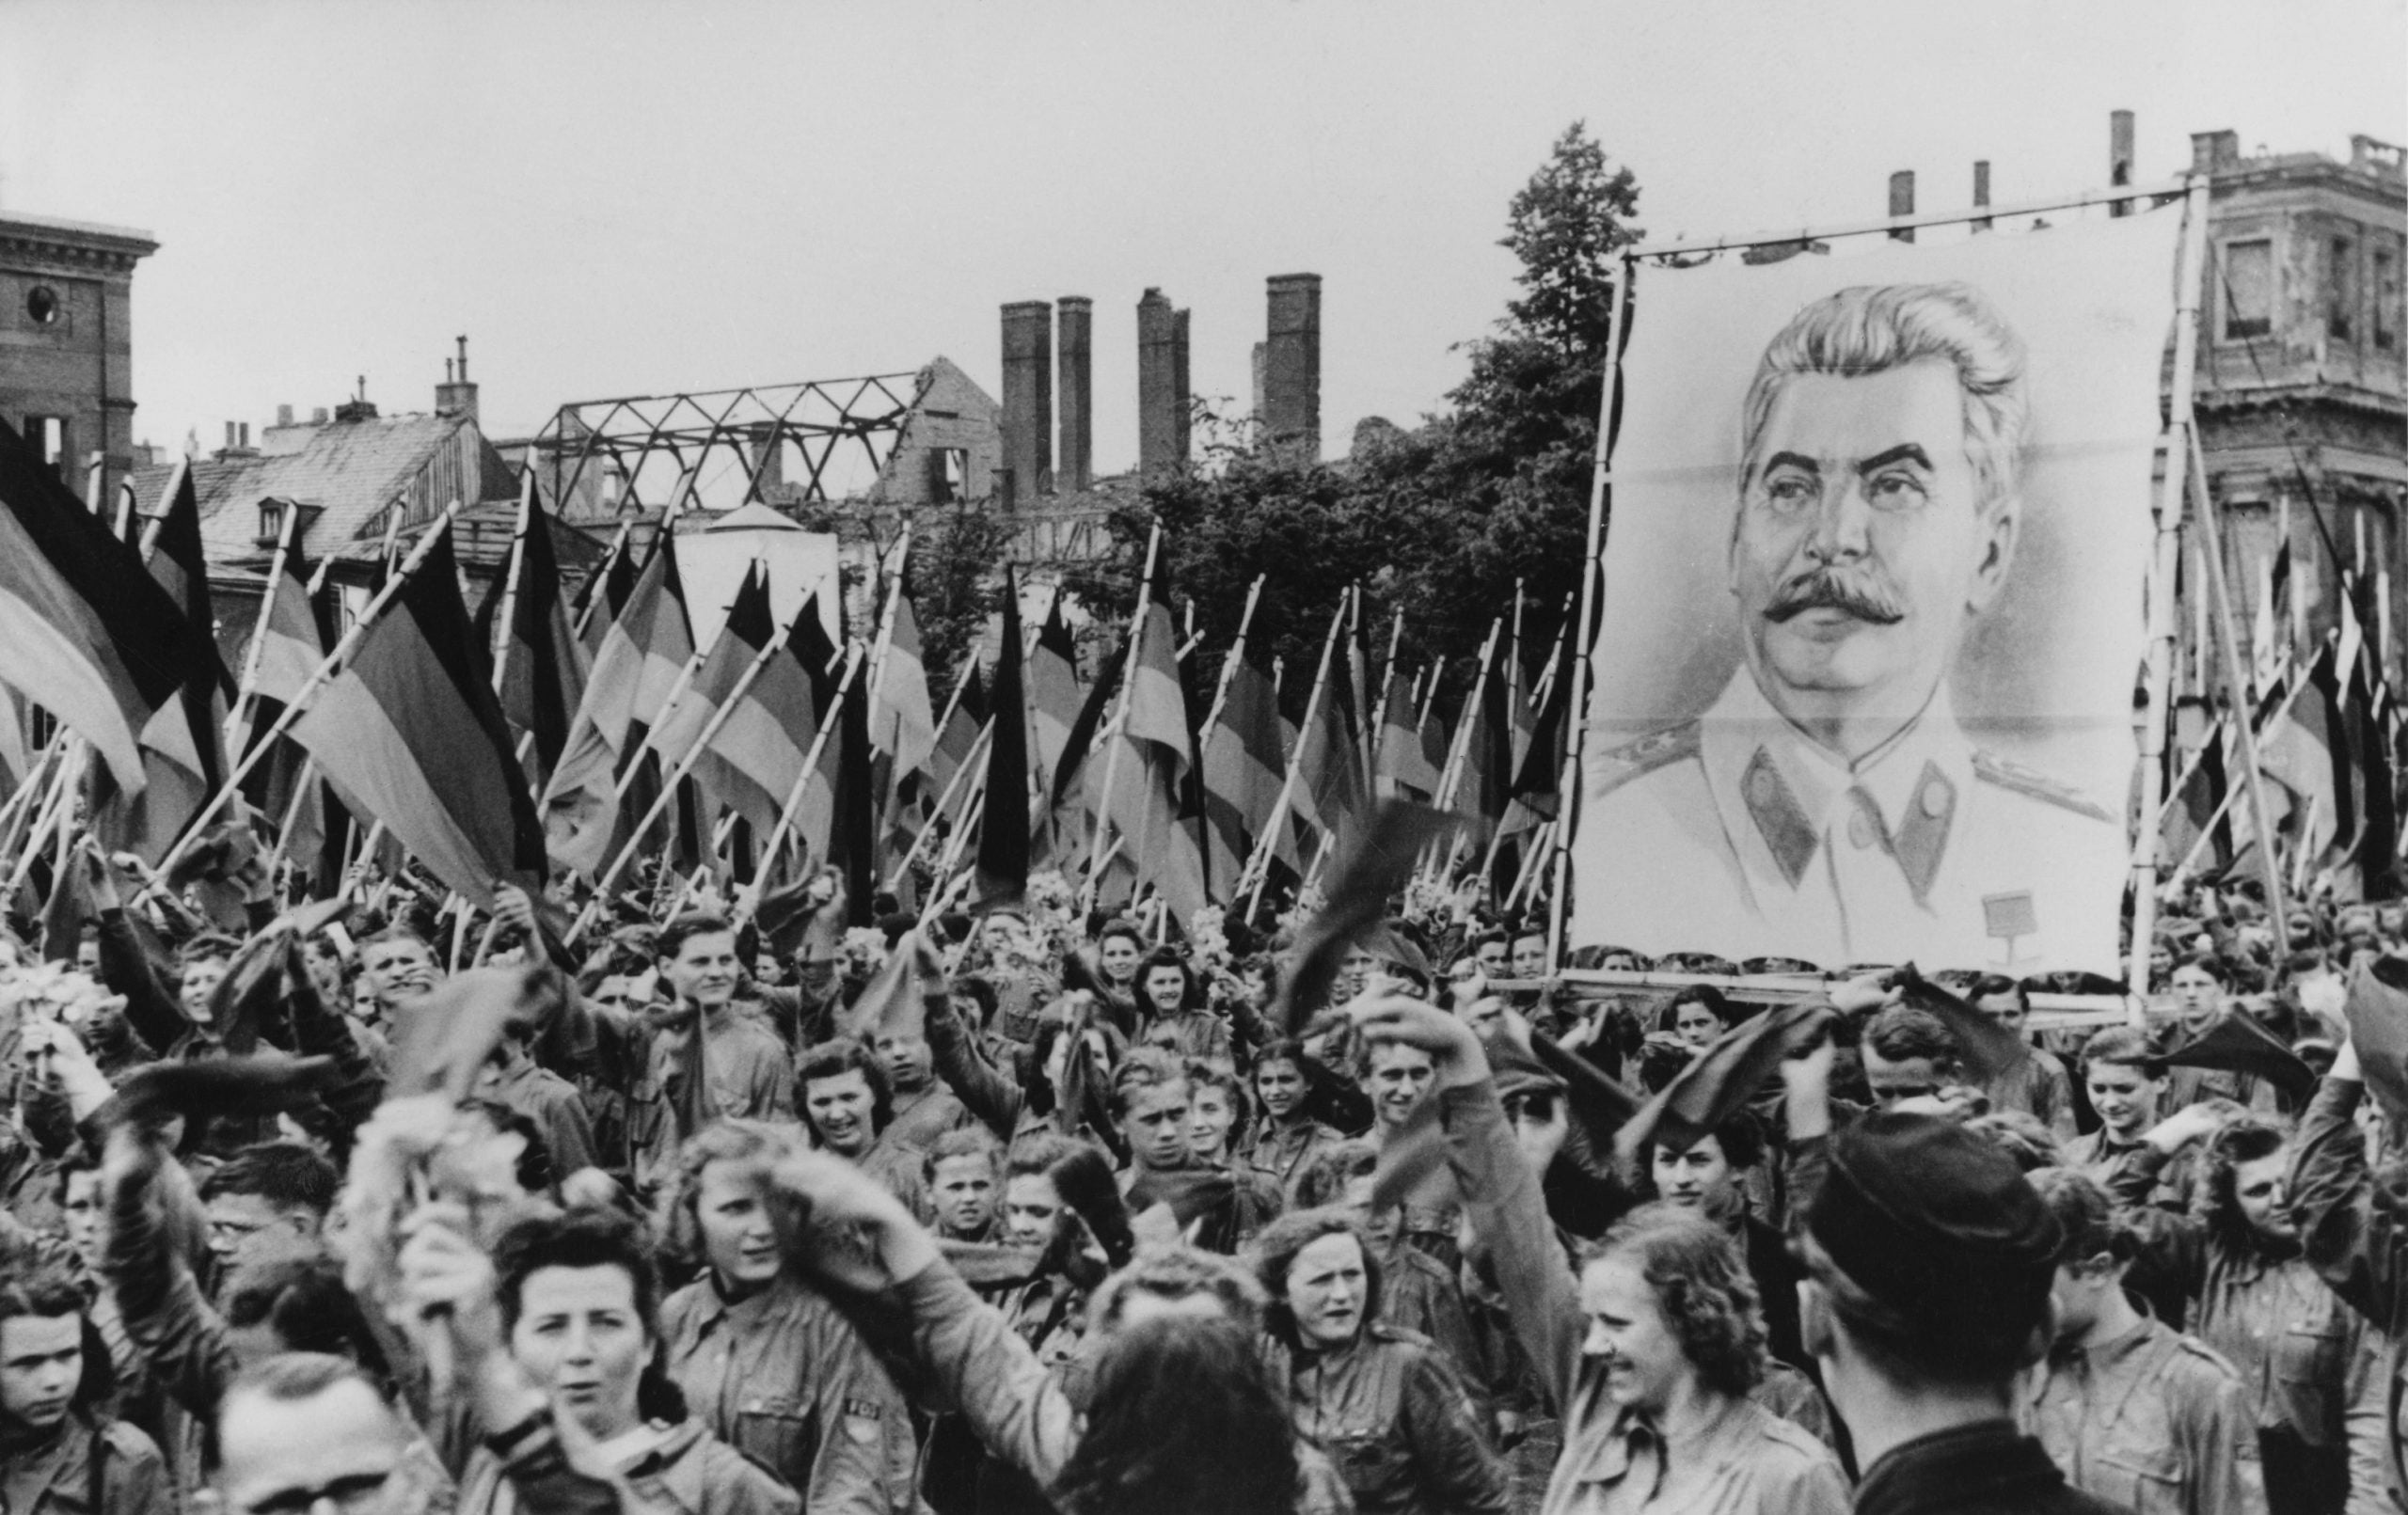 Julie Burchill: why I was wrong to admire Stalin